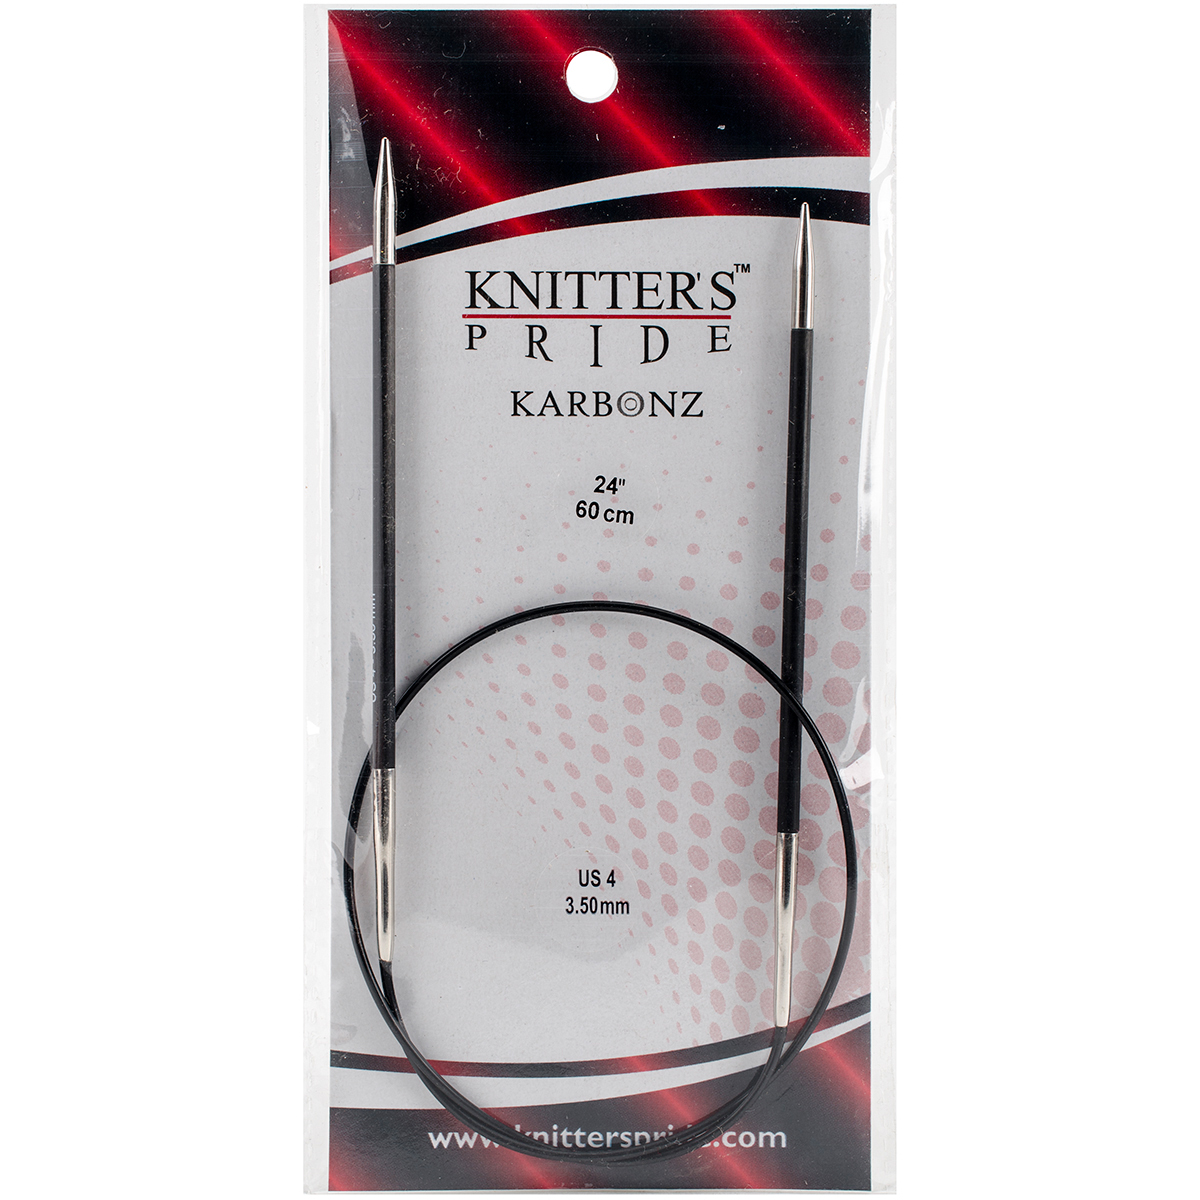 Knitter's Pride-Karbonz Fixed Circular Needles 24-Size 4/3.5mm